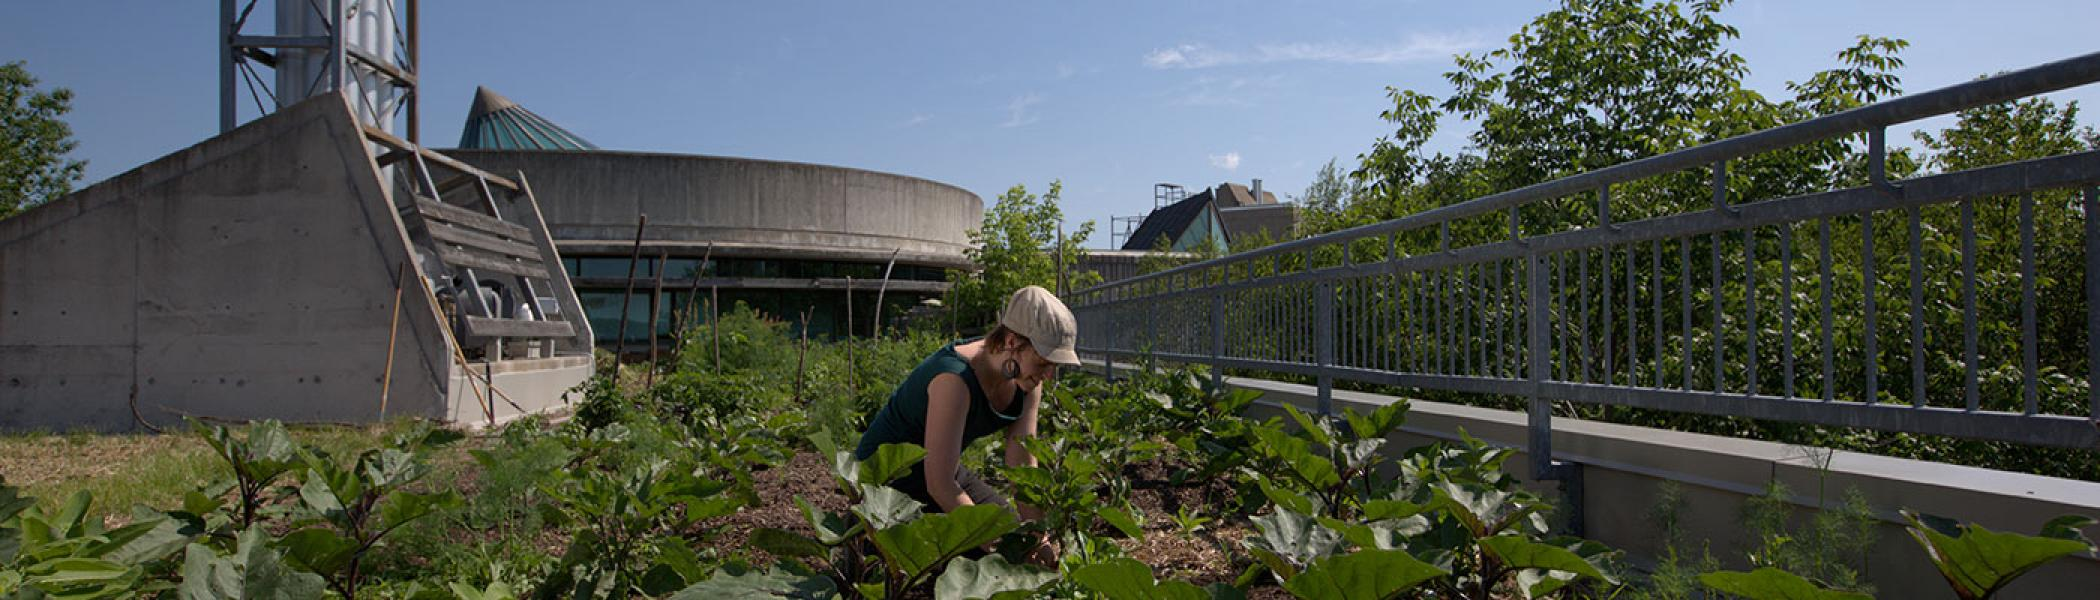 Student working on the rooftop garden above the Chemical Sciences Building